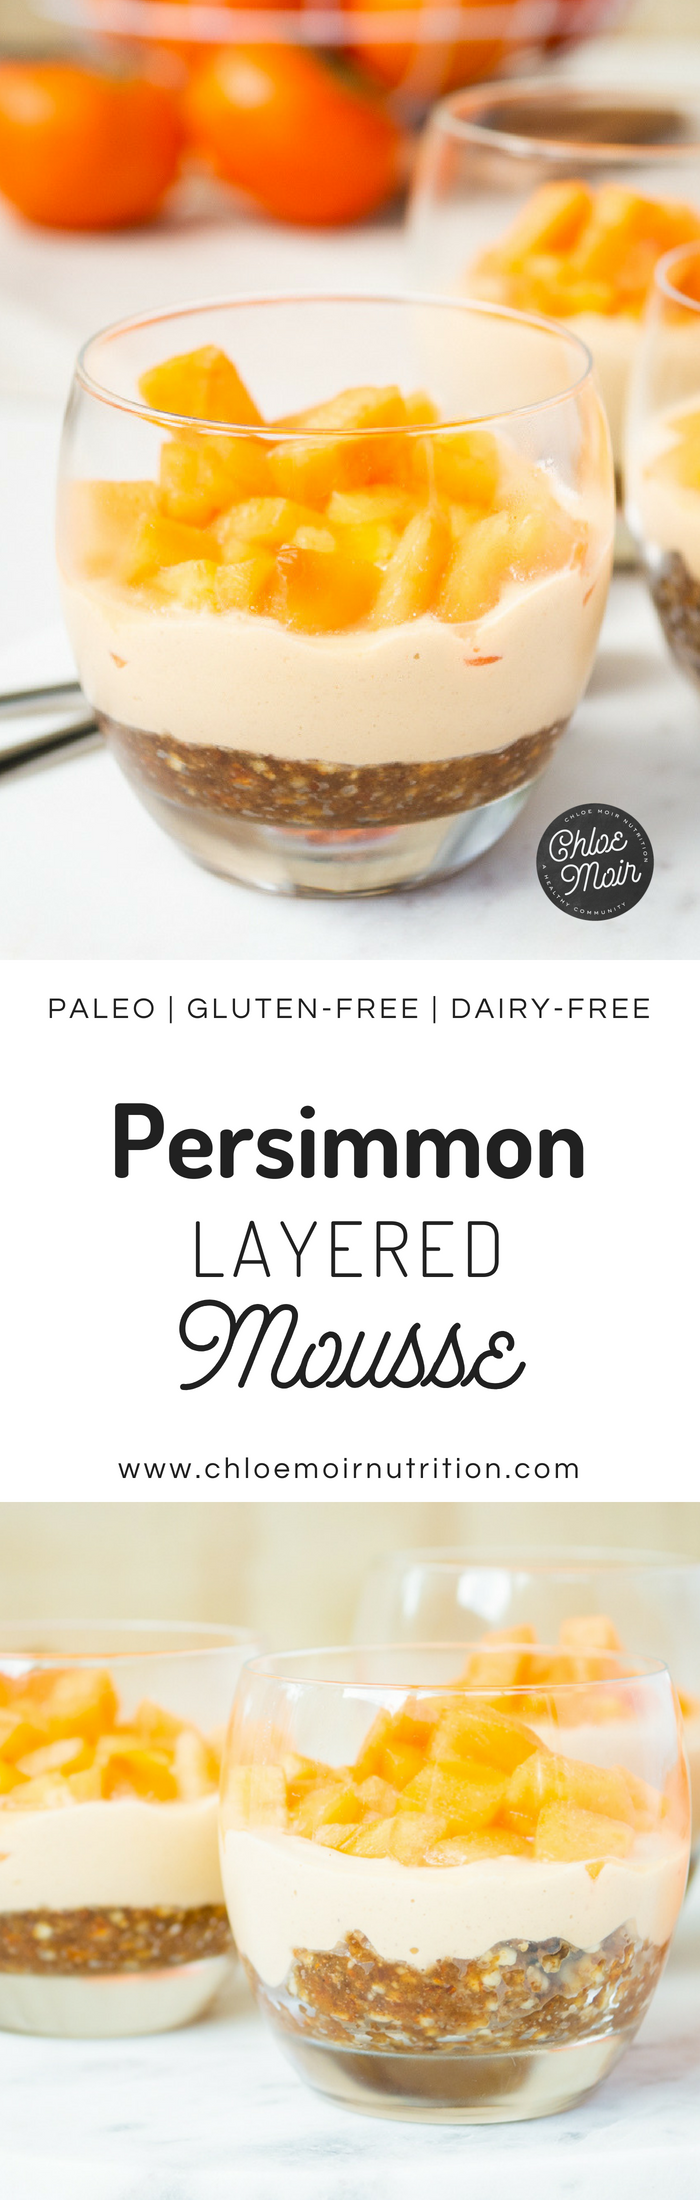 Persimmon Layered Mousse